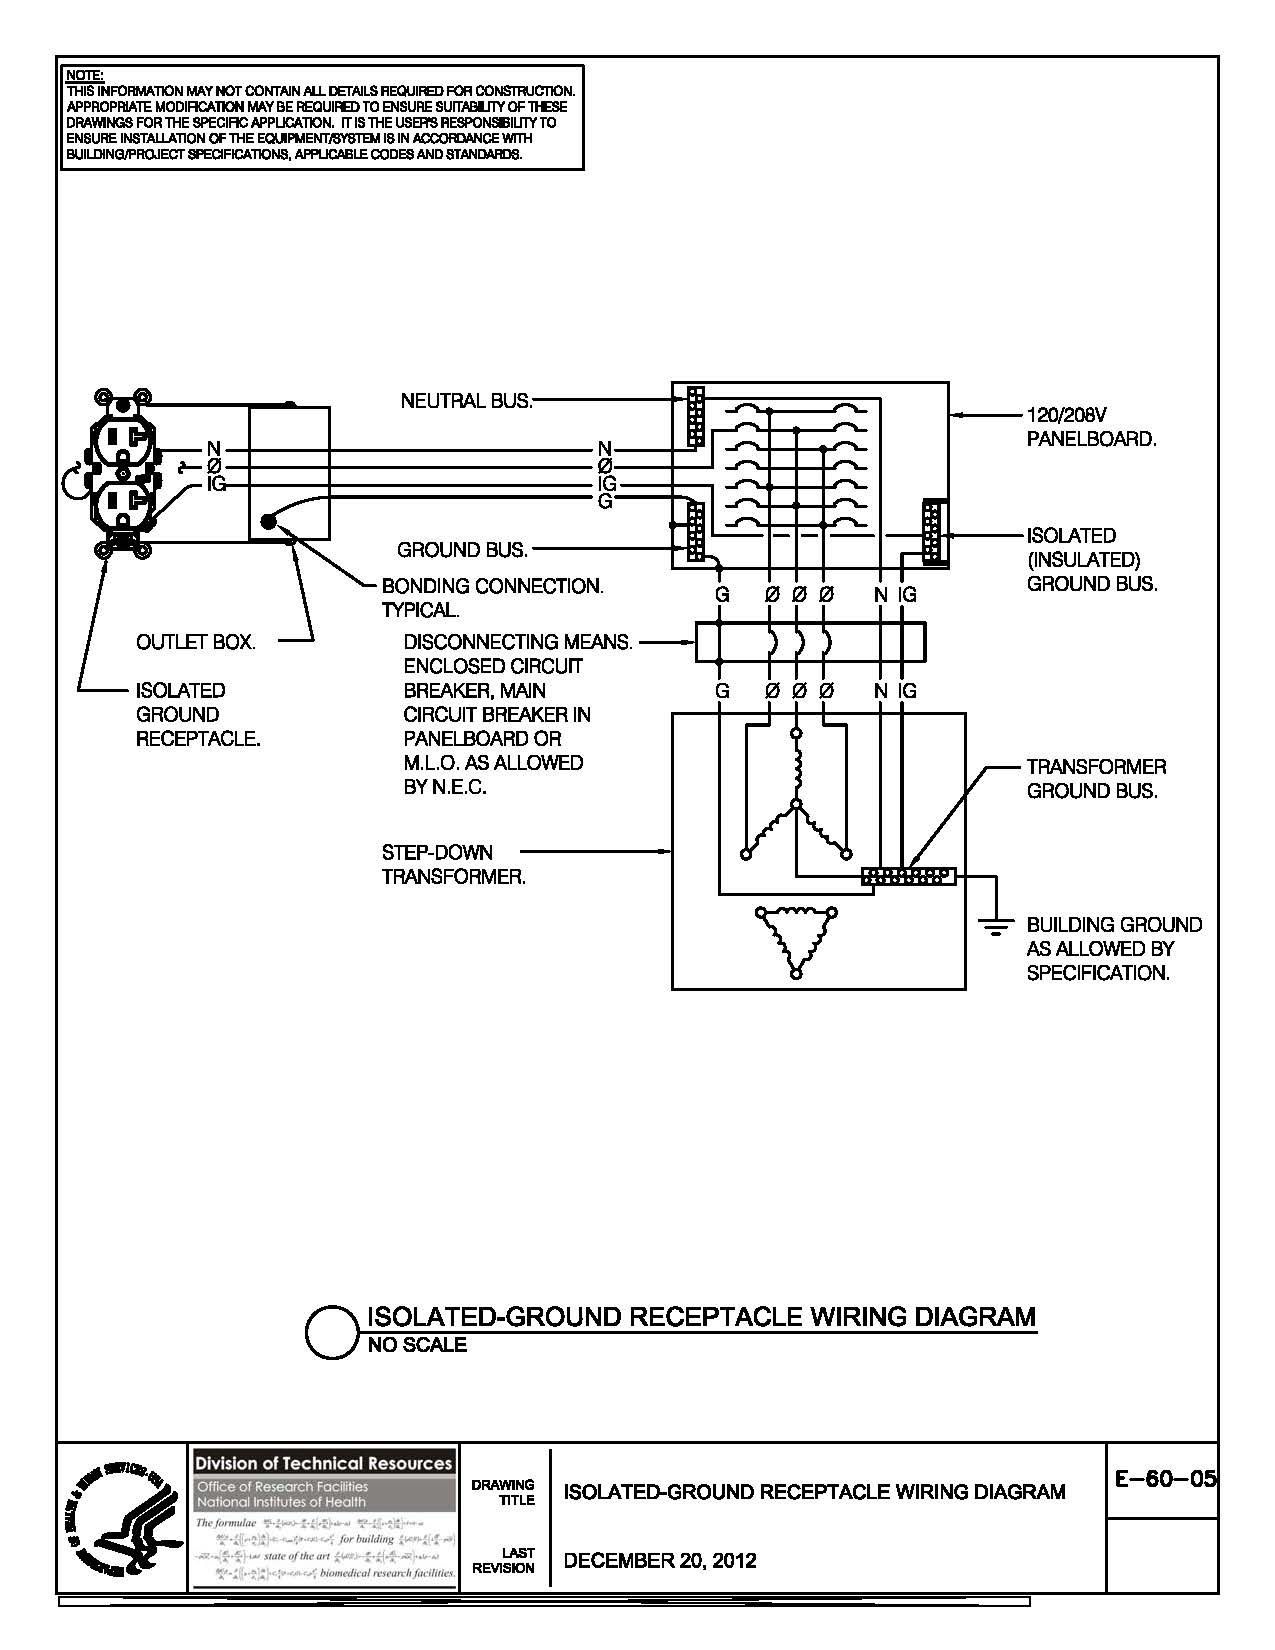 automatic vent damper wiring diagram download wiring diagram sample greenhouse motorized dampers wiring-diagram automatic vent damper wiring diagram collection automatic vent damper wiring diagram fresh nih standard cad